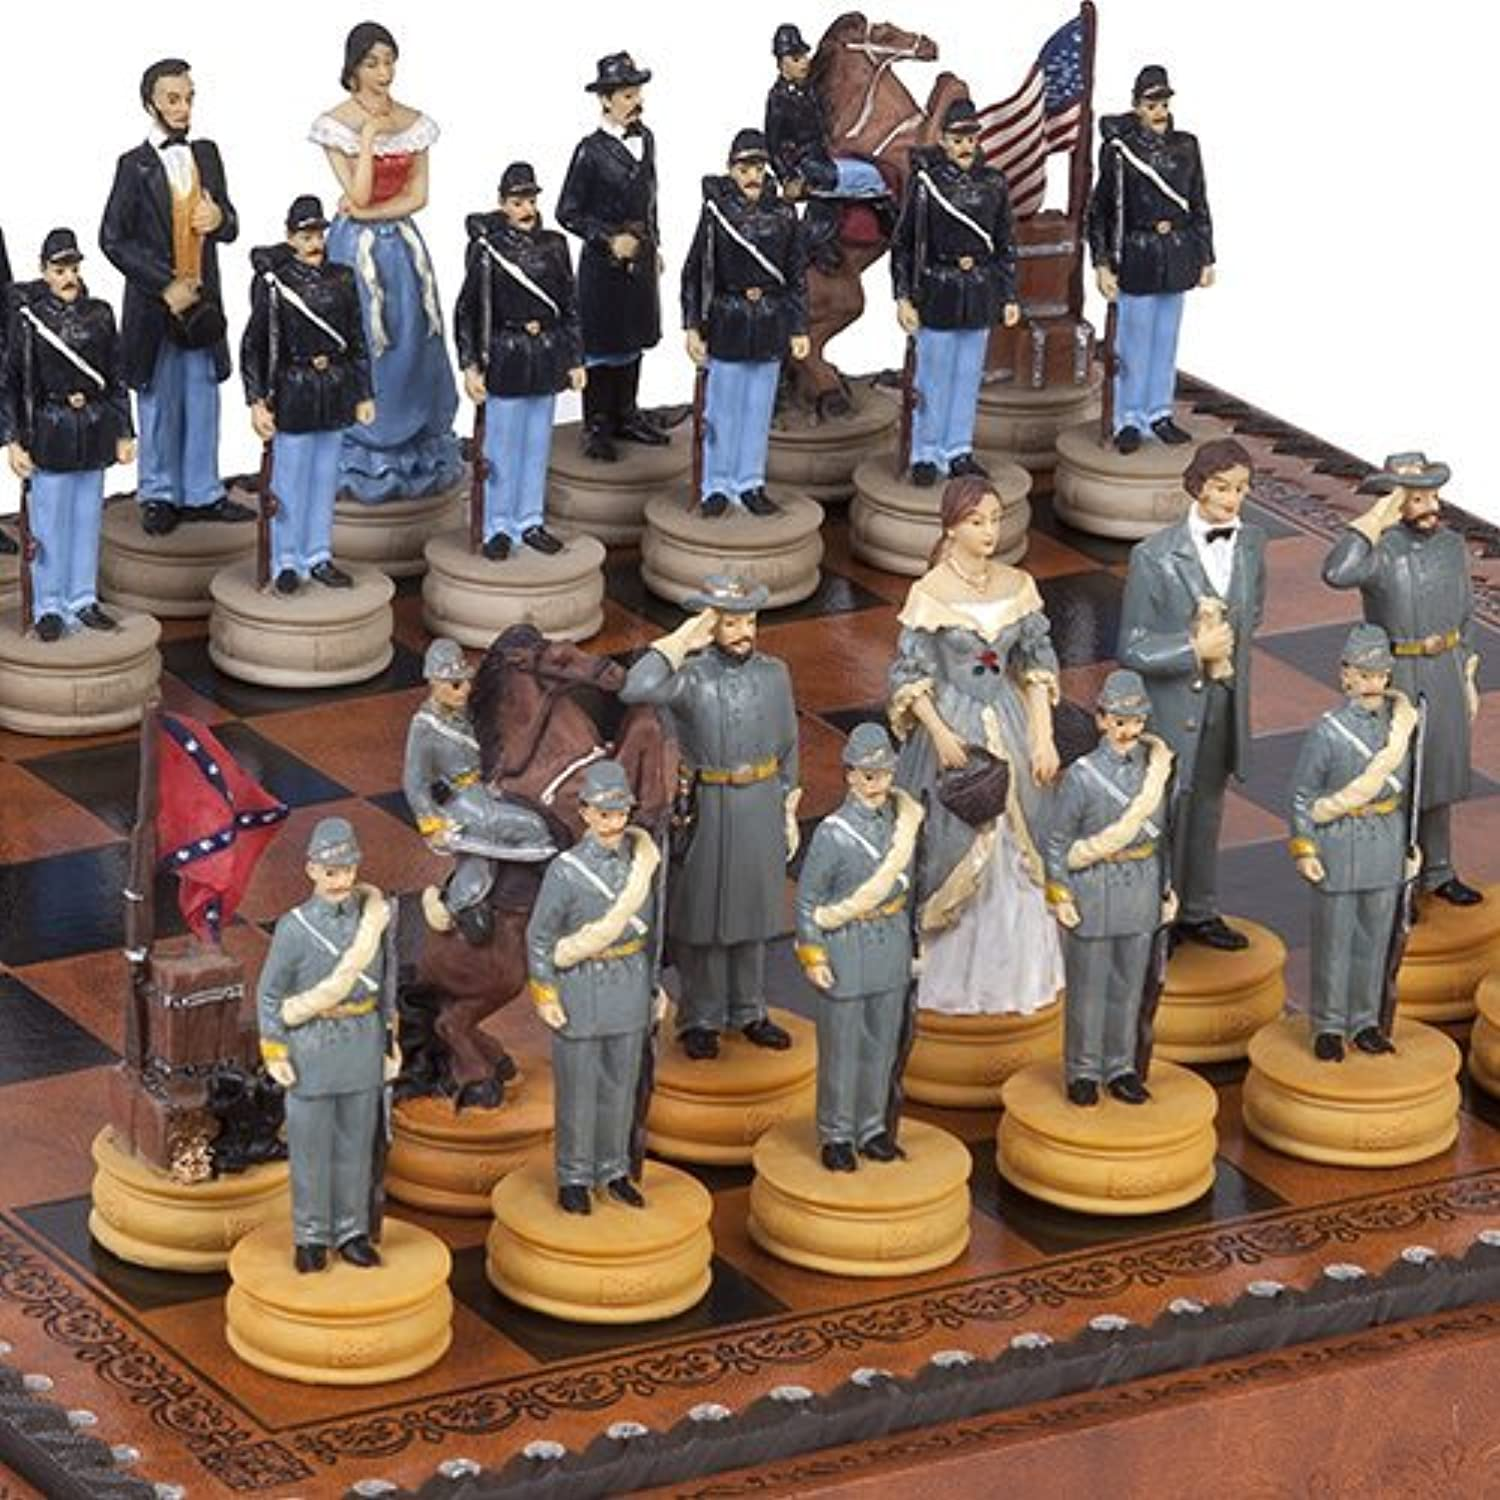 Hand Painted American Civil War Chessmen & Marcello Chess Board From Italy by